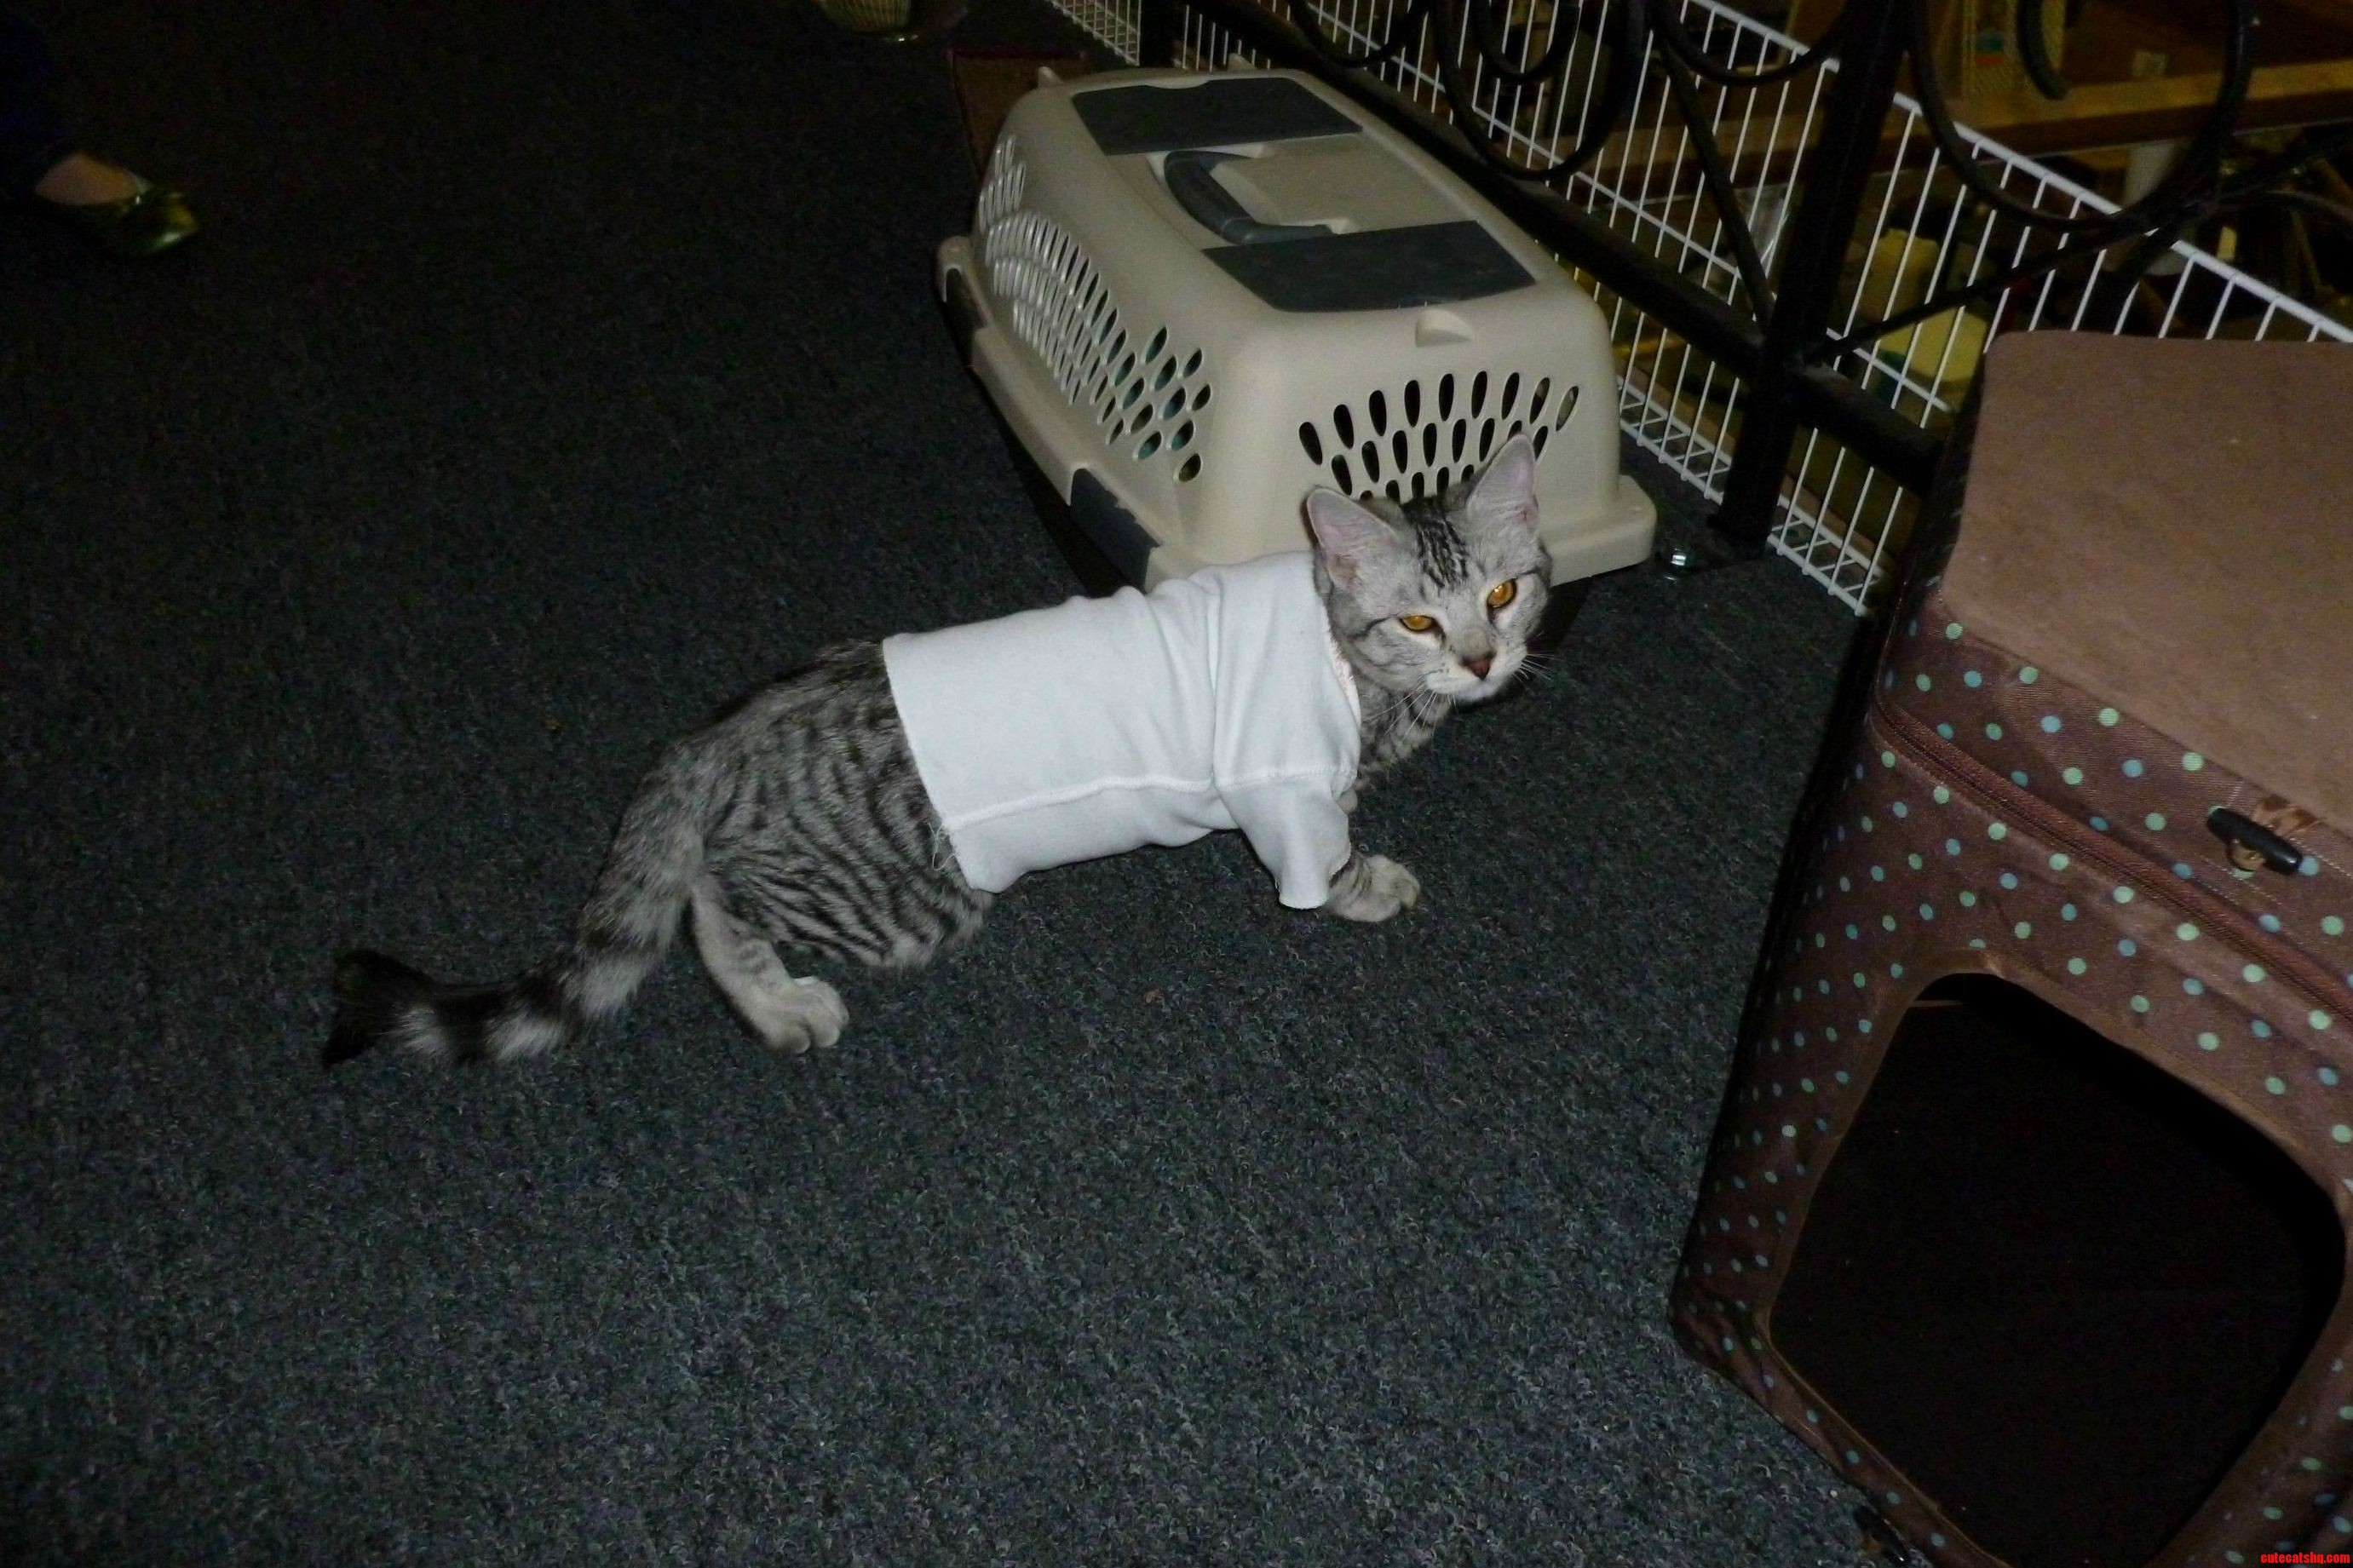 Baby Clothes Fit Cats A Little Too Well